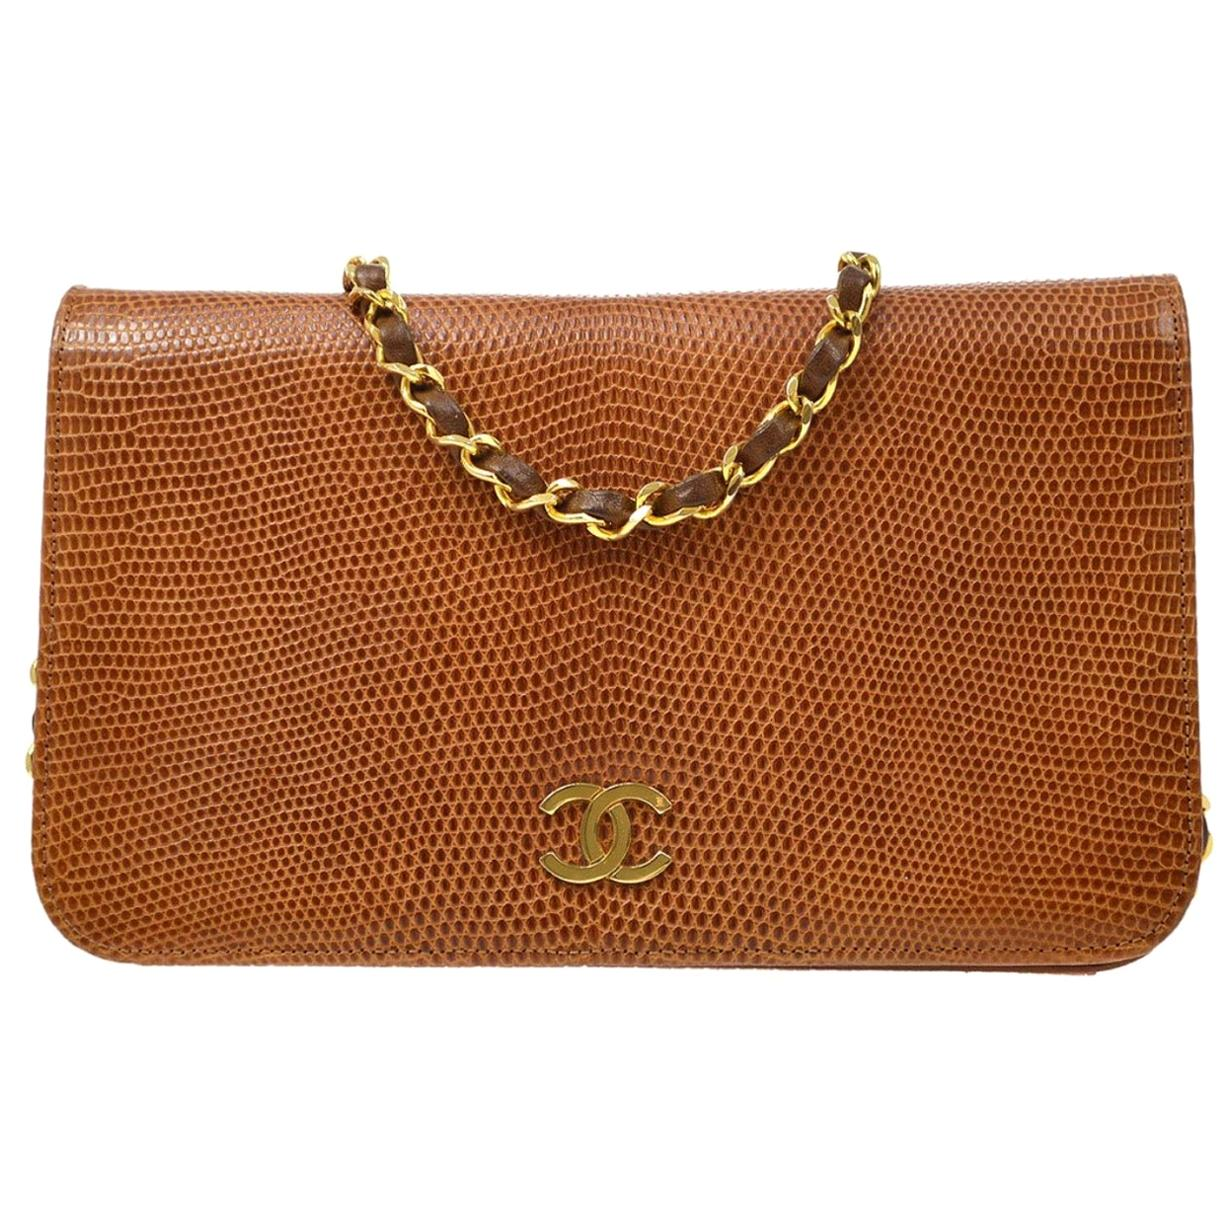 Chanel Cognac Brown Lizard Leather Exotic Leather Gold Small Shoulder Flap Bag